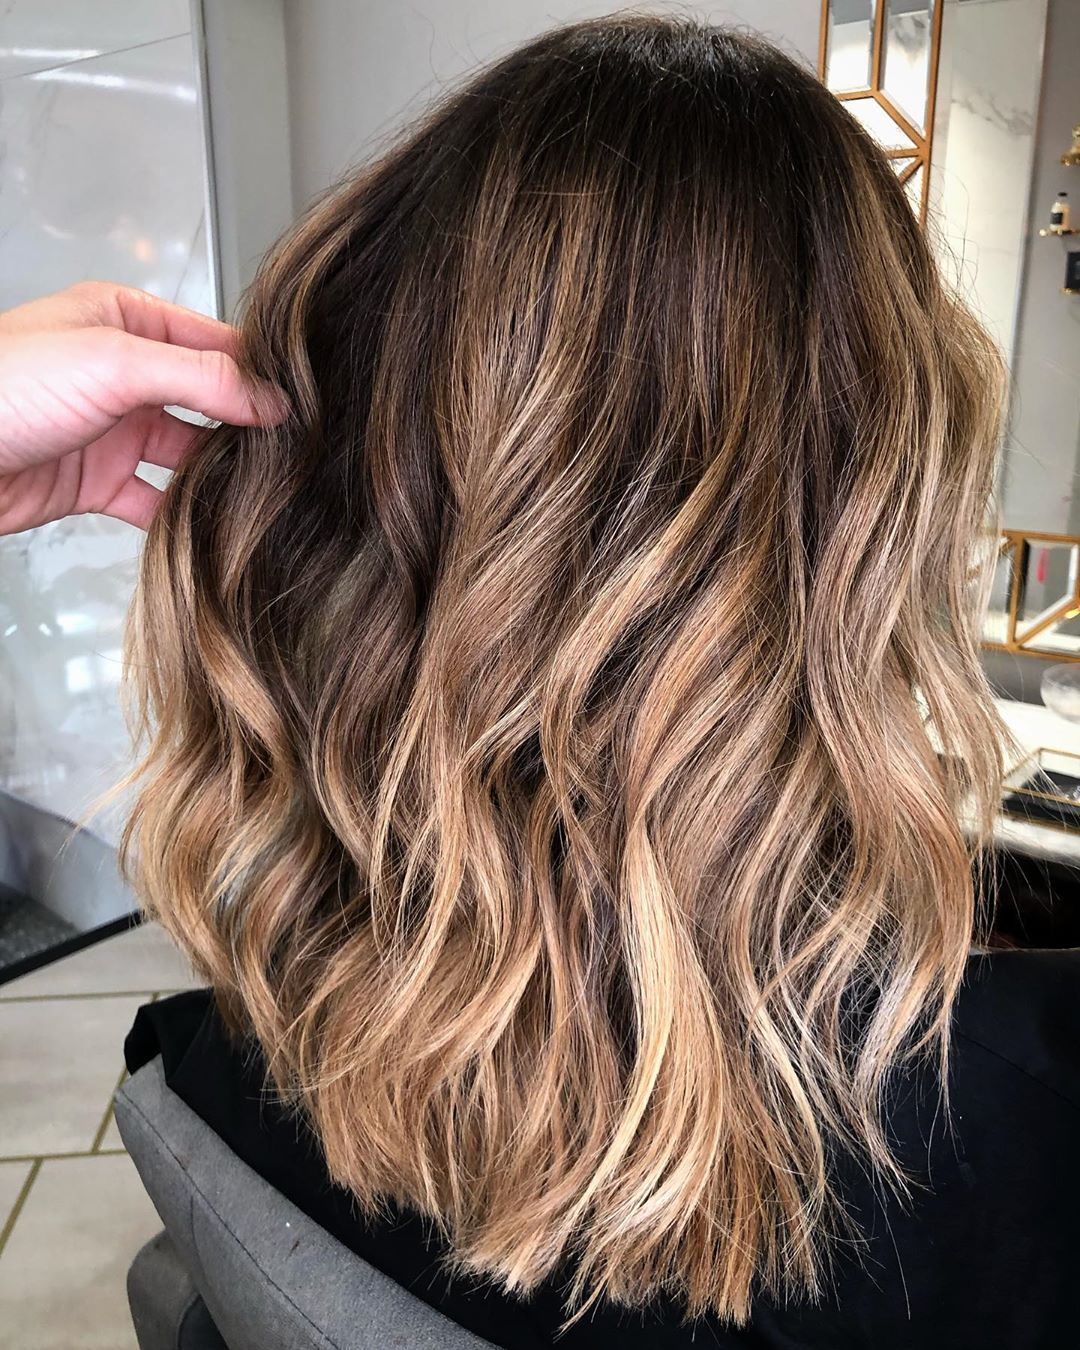 Hair At Home Long Hairdos Easy Hairstyles To Cute Tumblr Hairstyles Cute Hair Hairstyles Womens Hairstyle In 2020 Long Hair Styles Medium Hair Styles Pretty Hairstyles